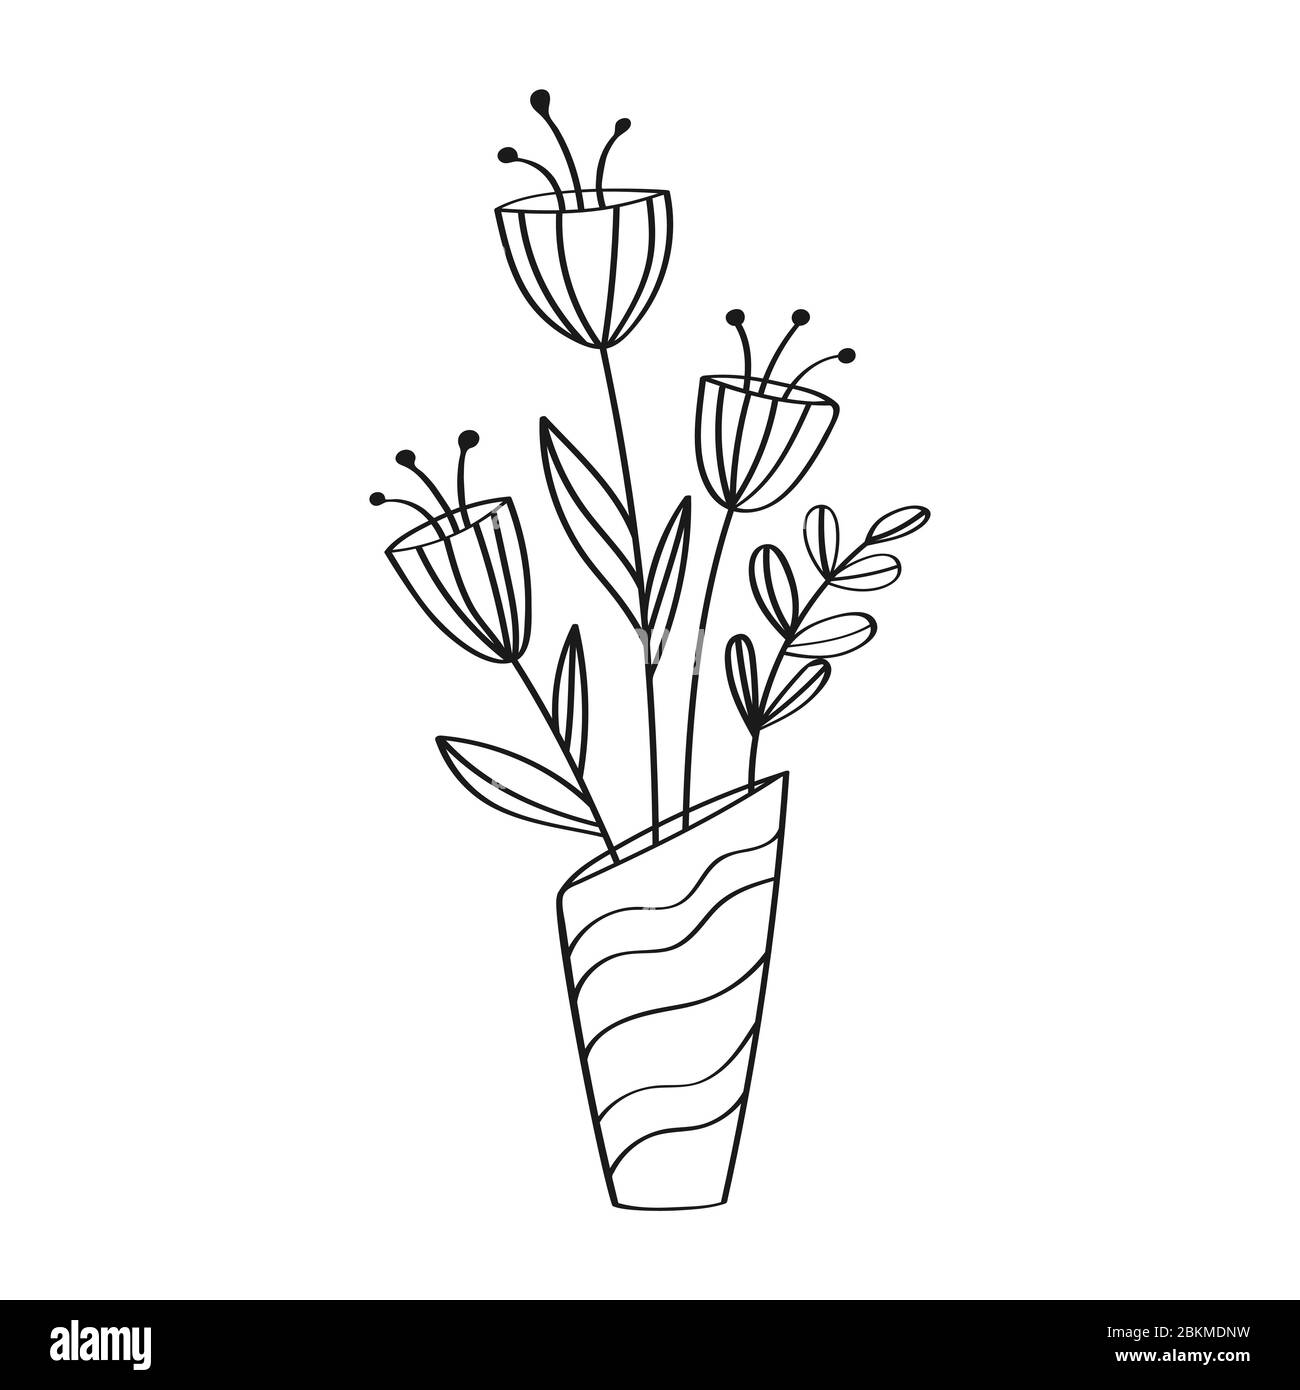 Vase With A Bouquet Of Flowers Empty Contour Silhouette Simple Stock Design For Scrapbooking Coloring Books Or Theme Design Stock Vector Image Art Alamy